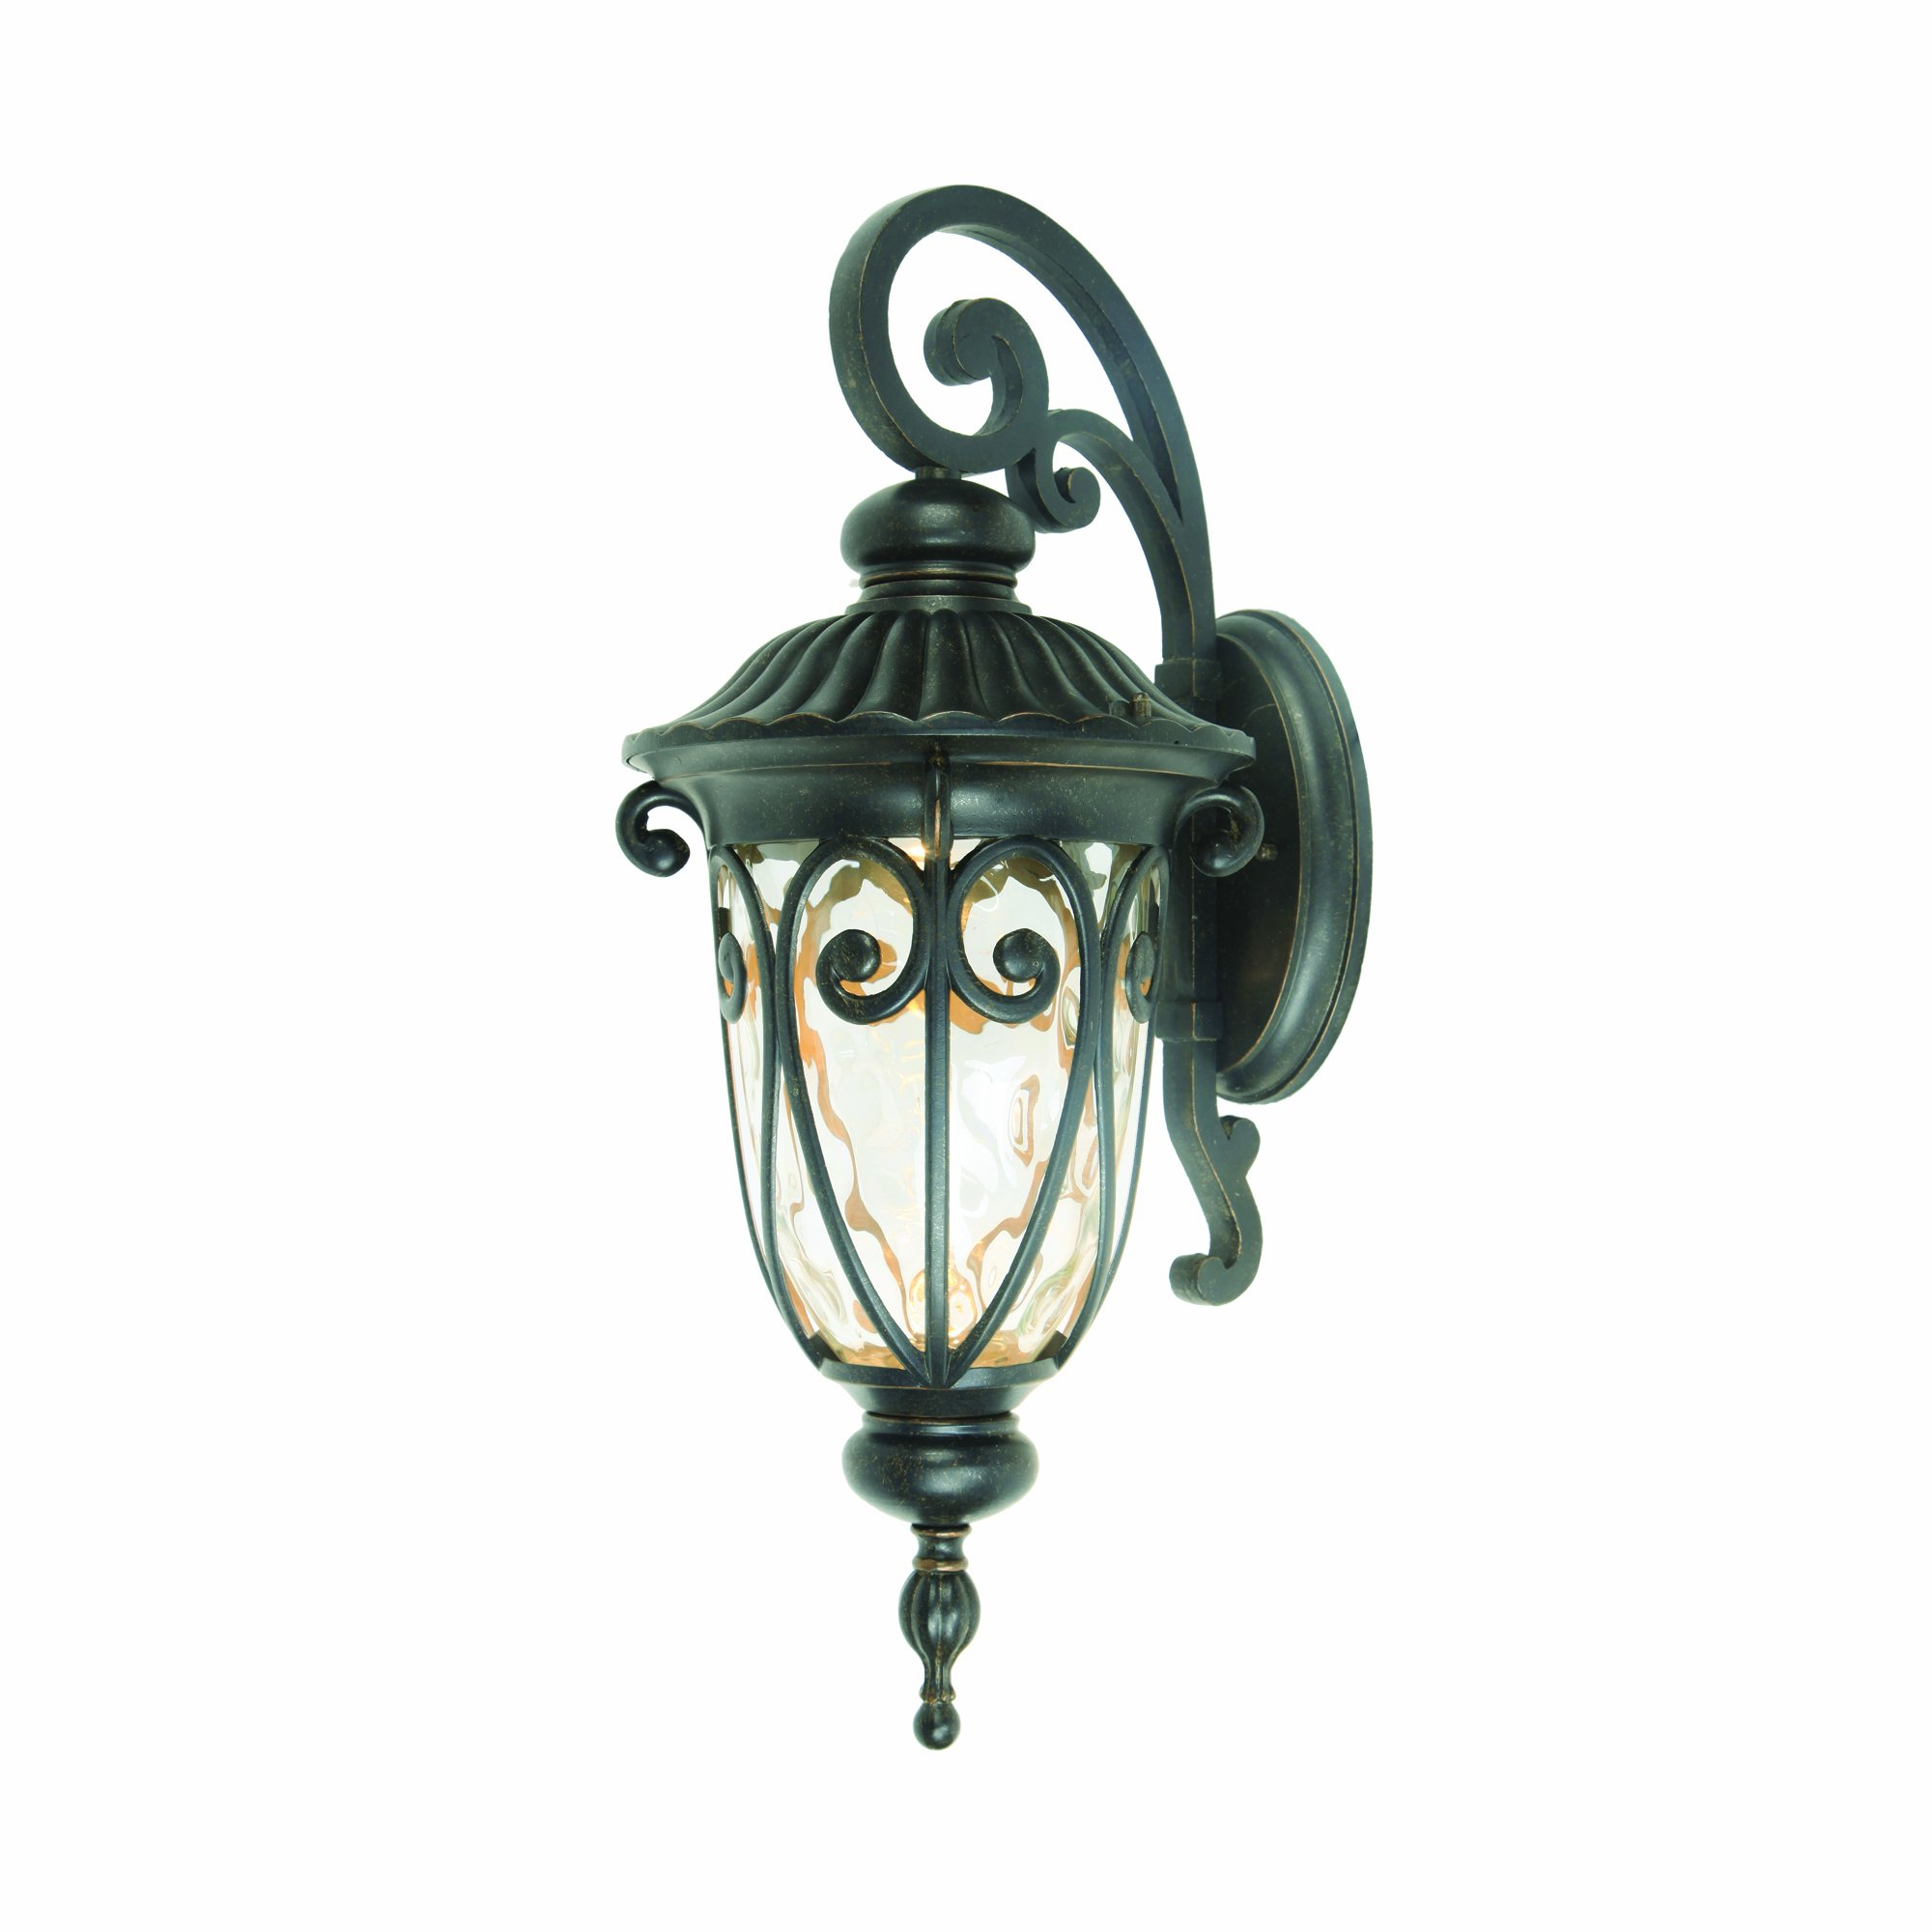 Yosemite Home Decor E519MDORB 1 Light Led Exterior with Clear Medium Sized Glass, Oil Rubbed Bronze Finish by Yosemite Home Decor